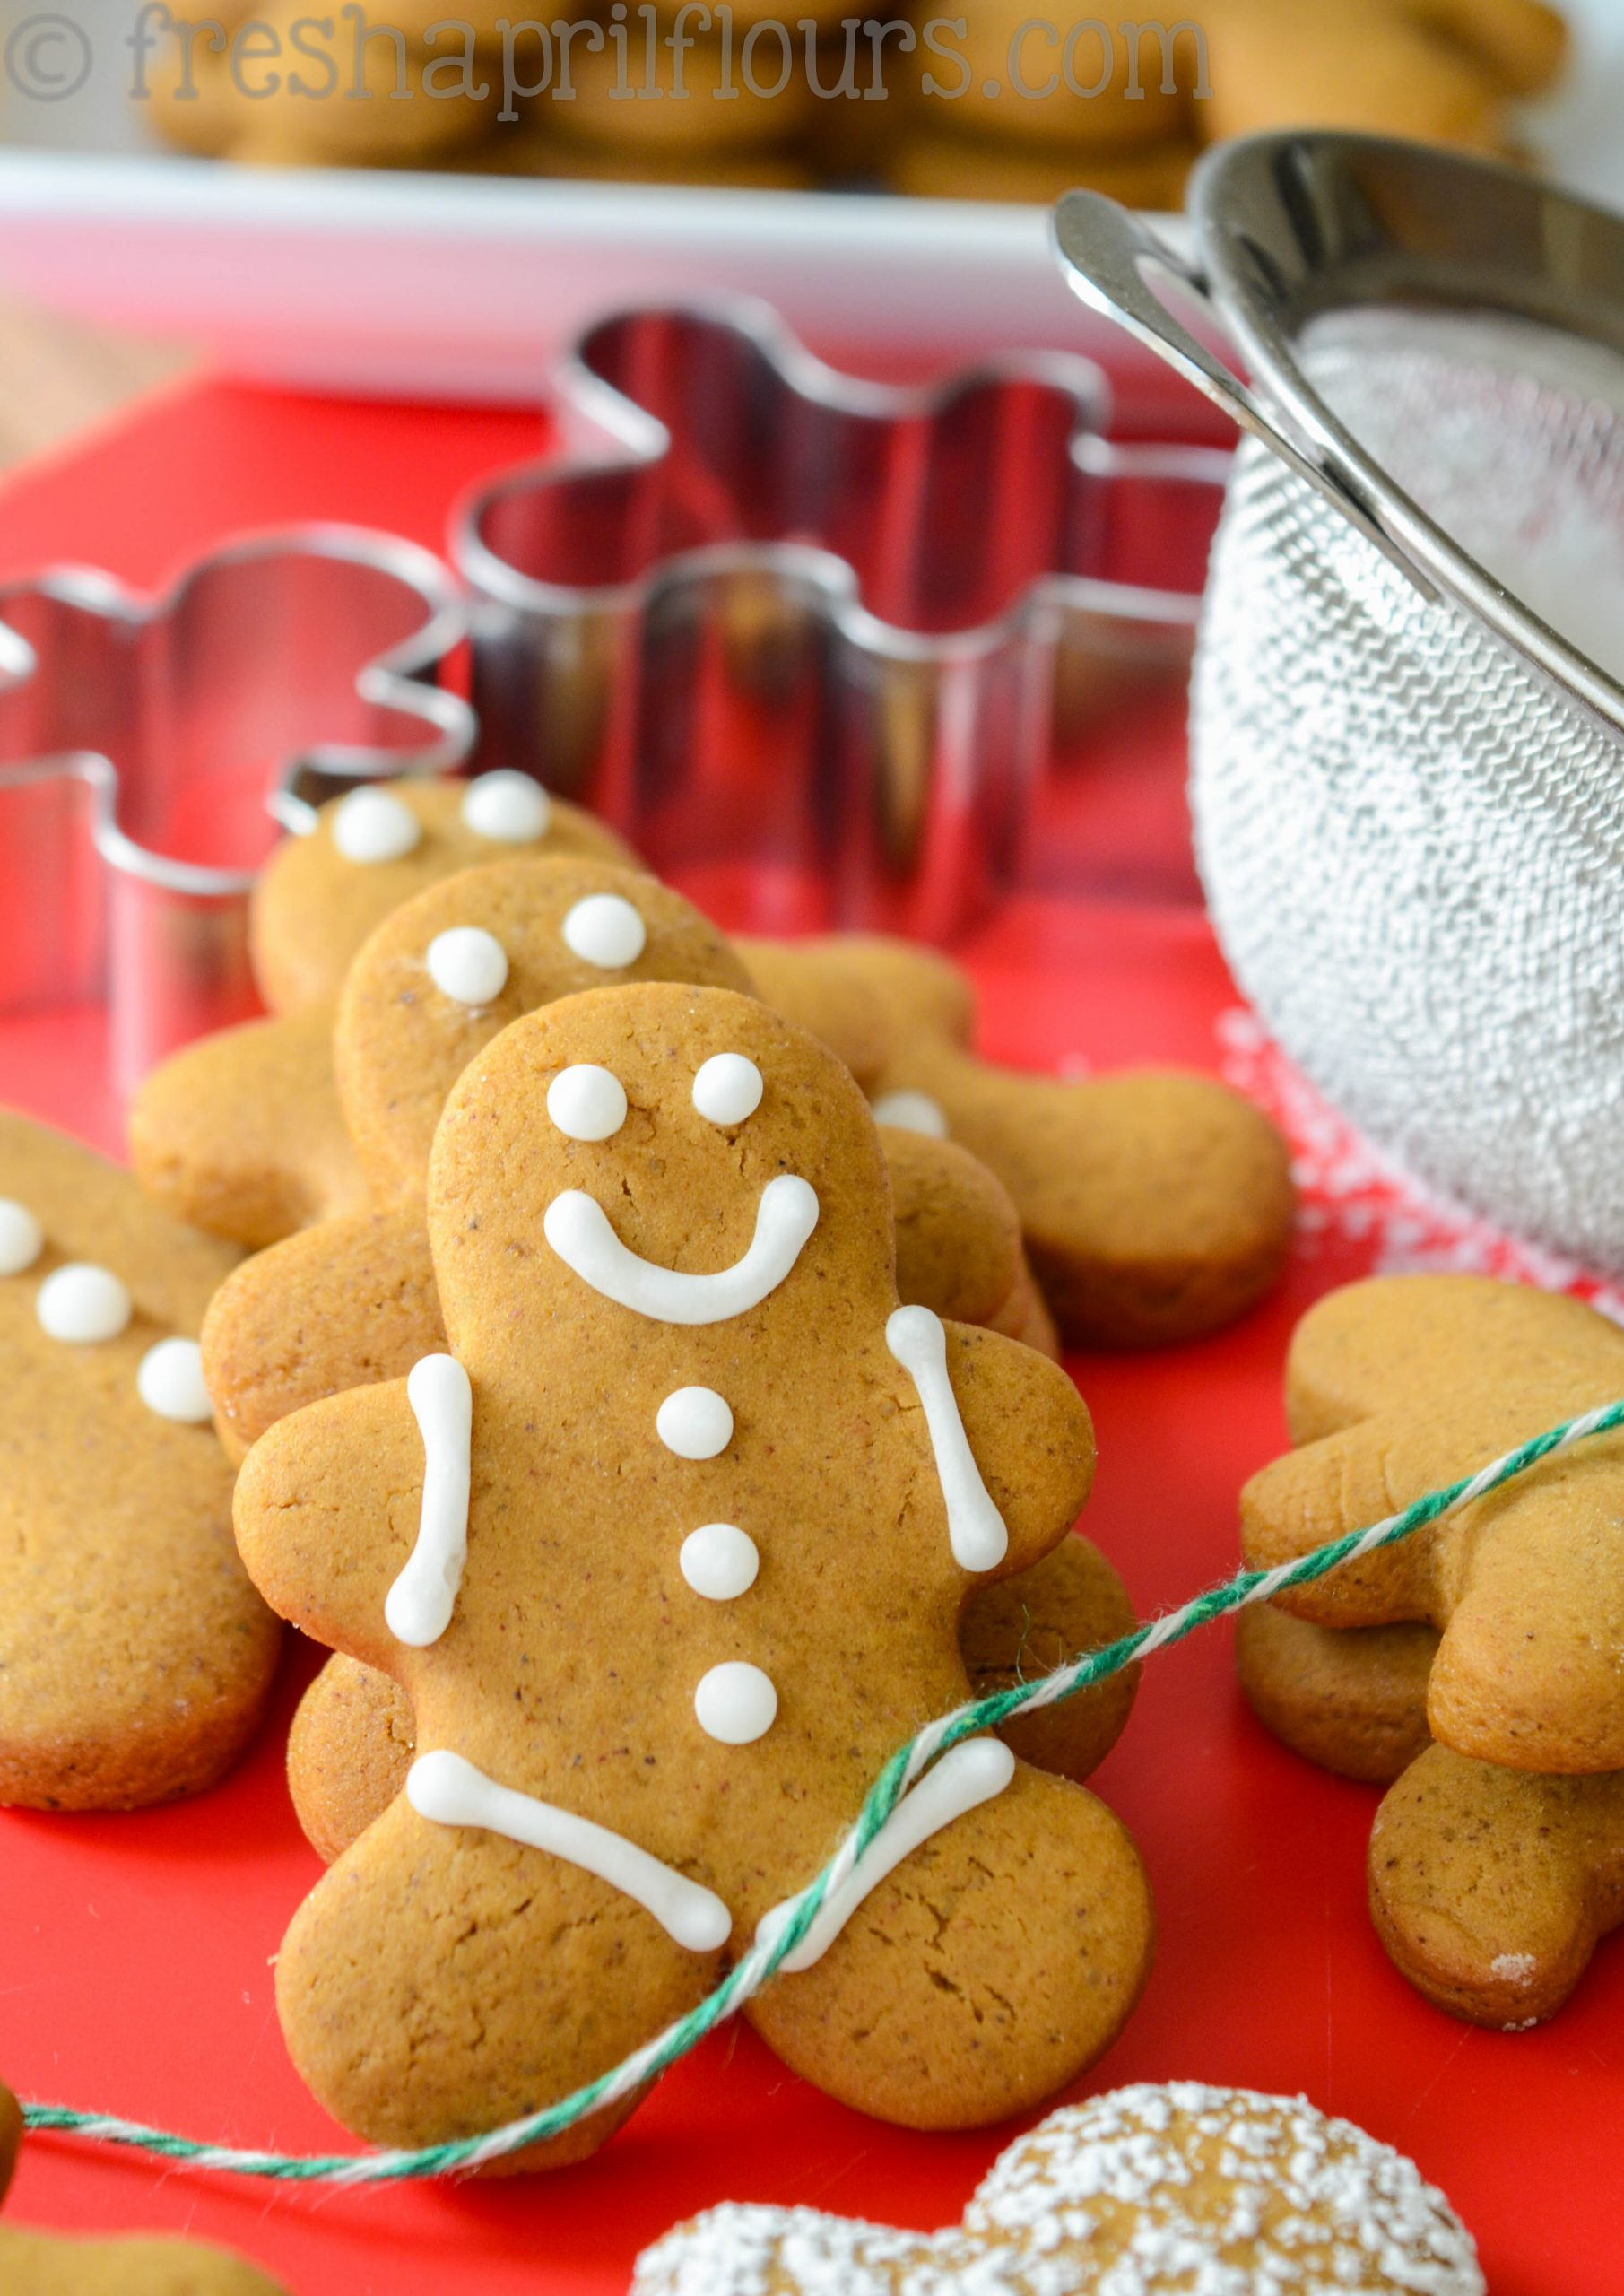 gingerbread man cookie decorated with a smiling face with cookie cutters and a powdered sugar shaker in the background